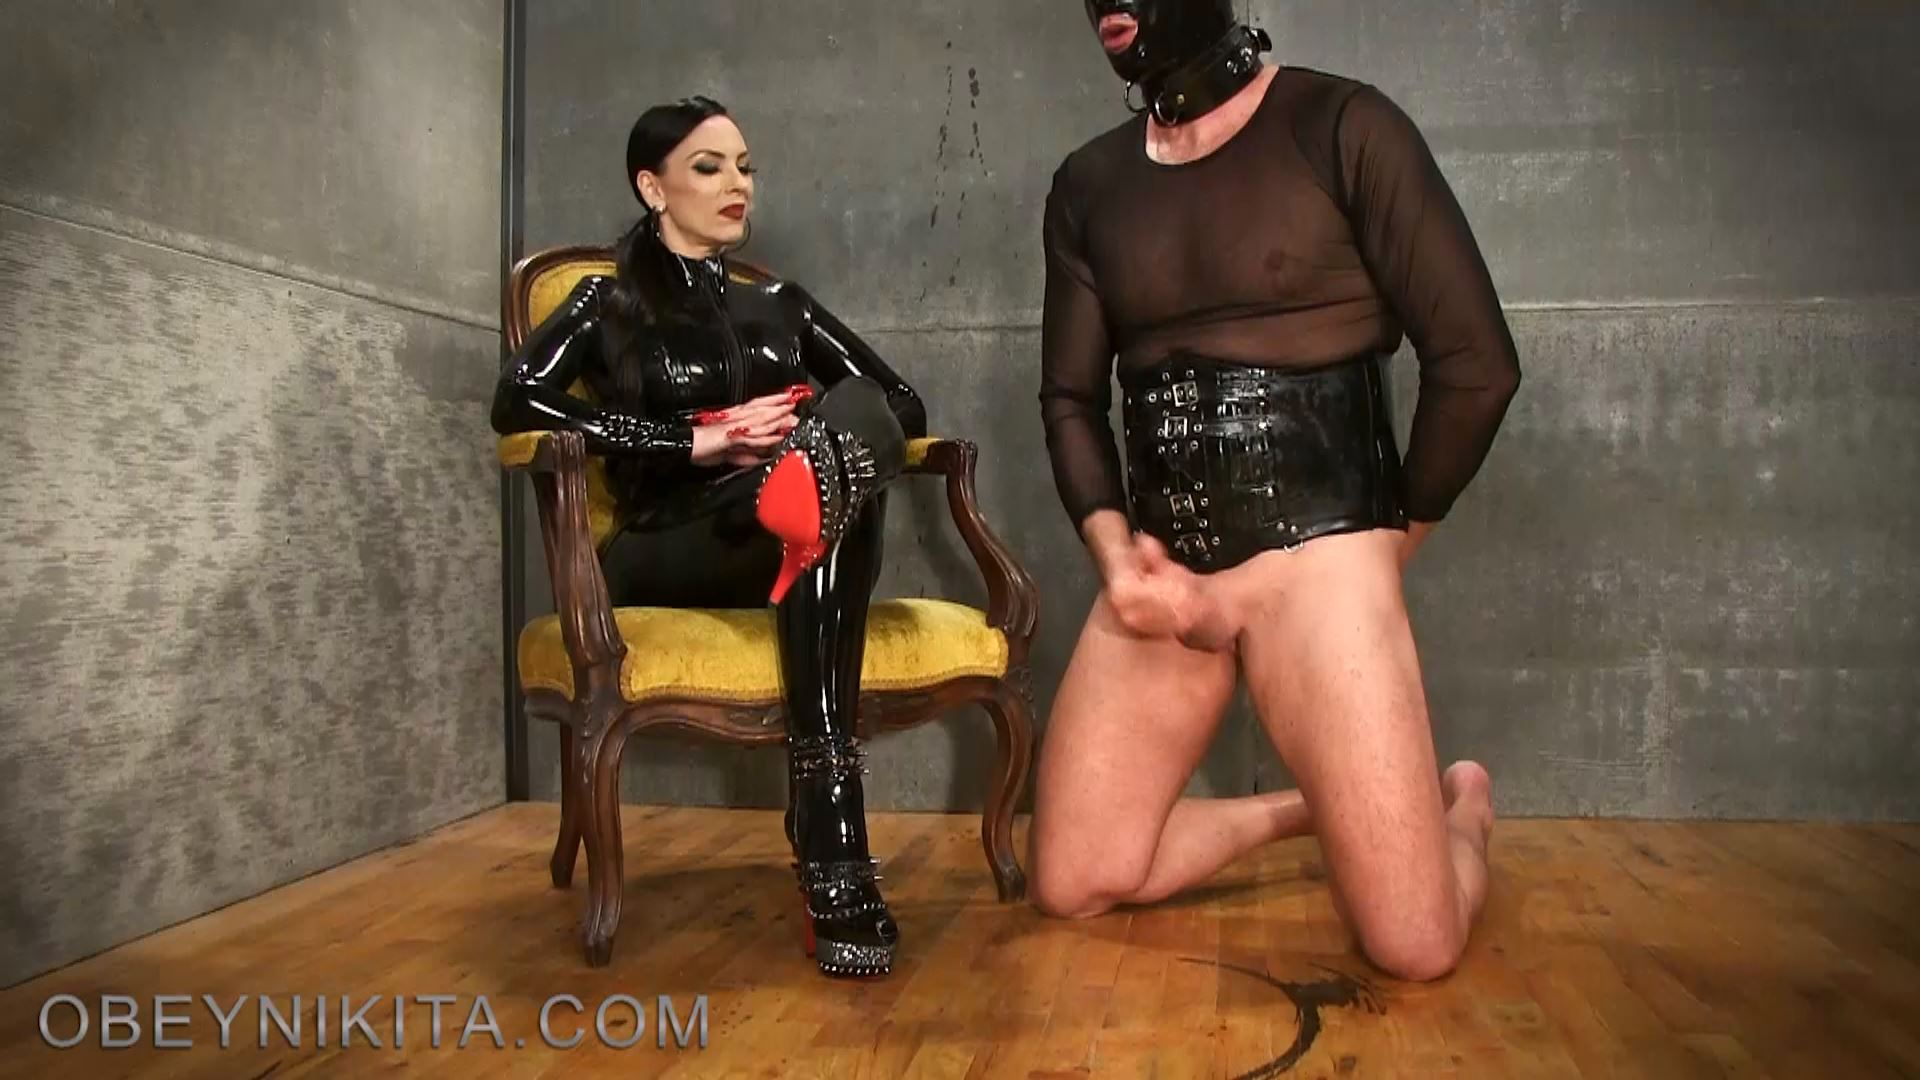 CUM FOR MY HEELS. FEATURING: MISTRESS NIKITA - OBEYNIKITA - FULL HD/1080p/MP4